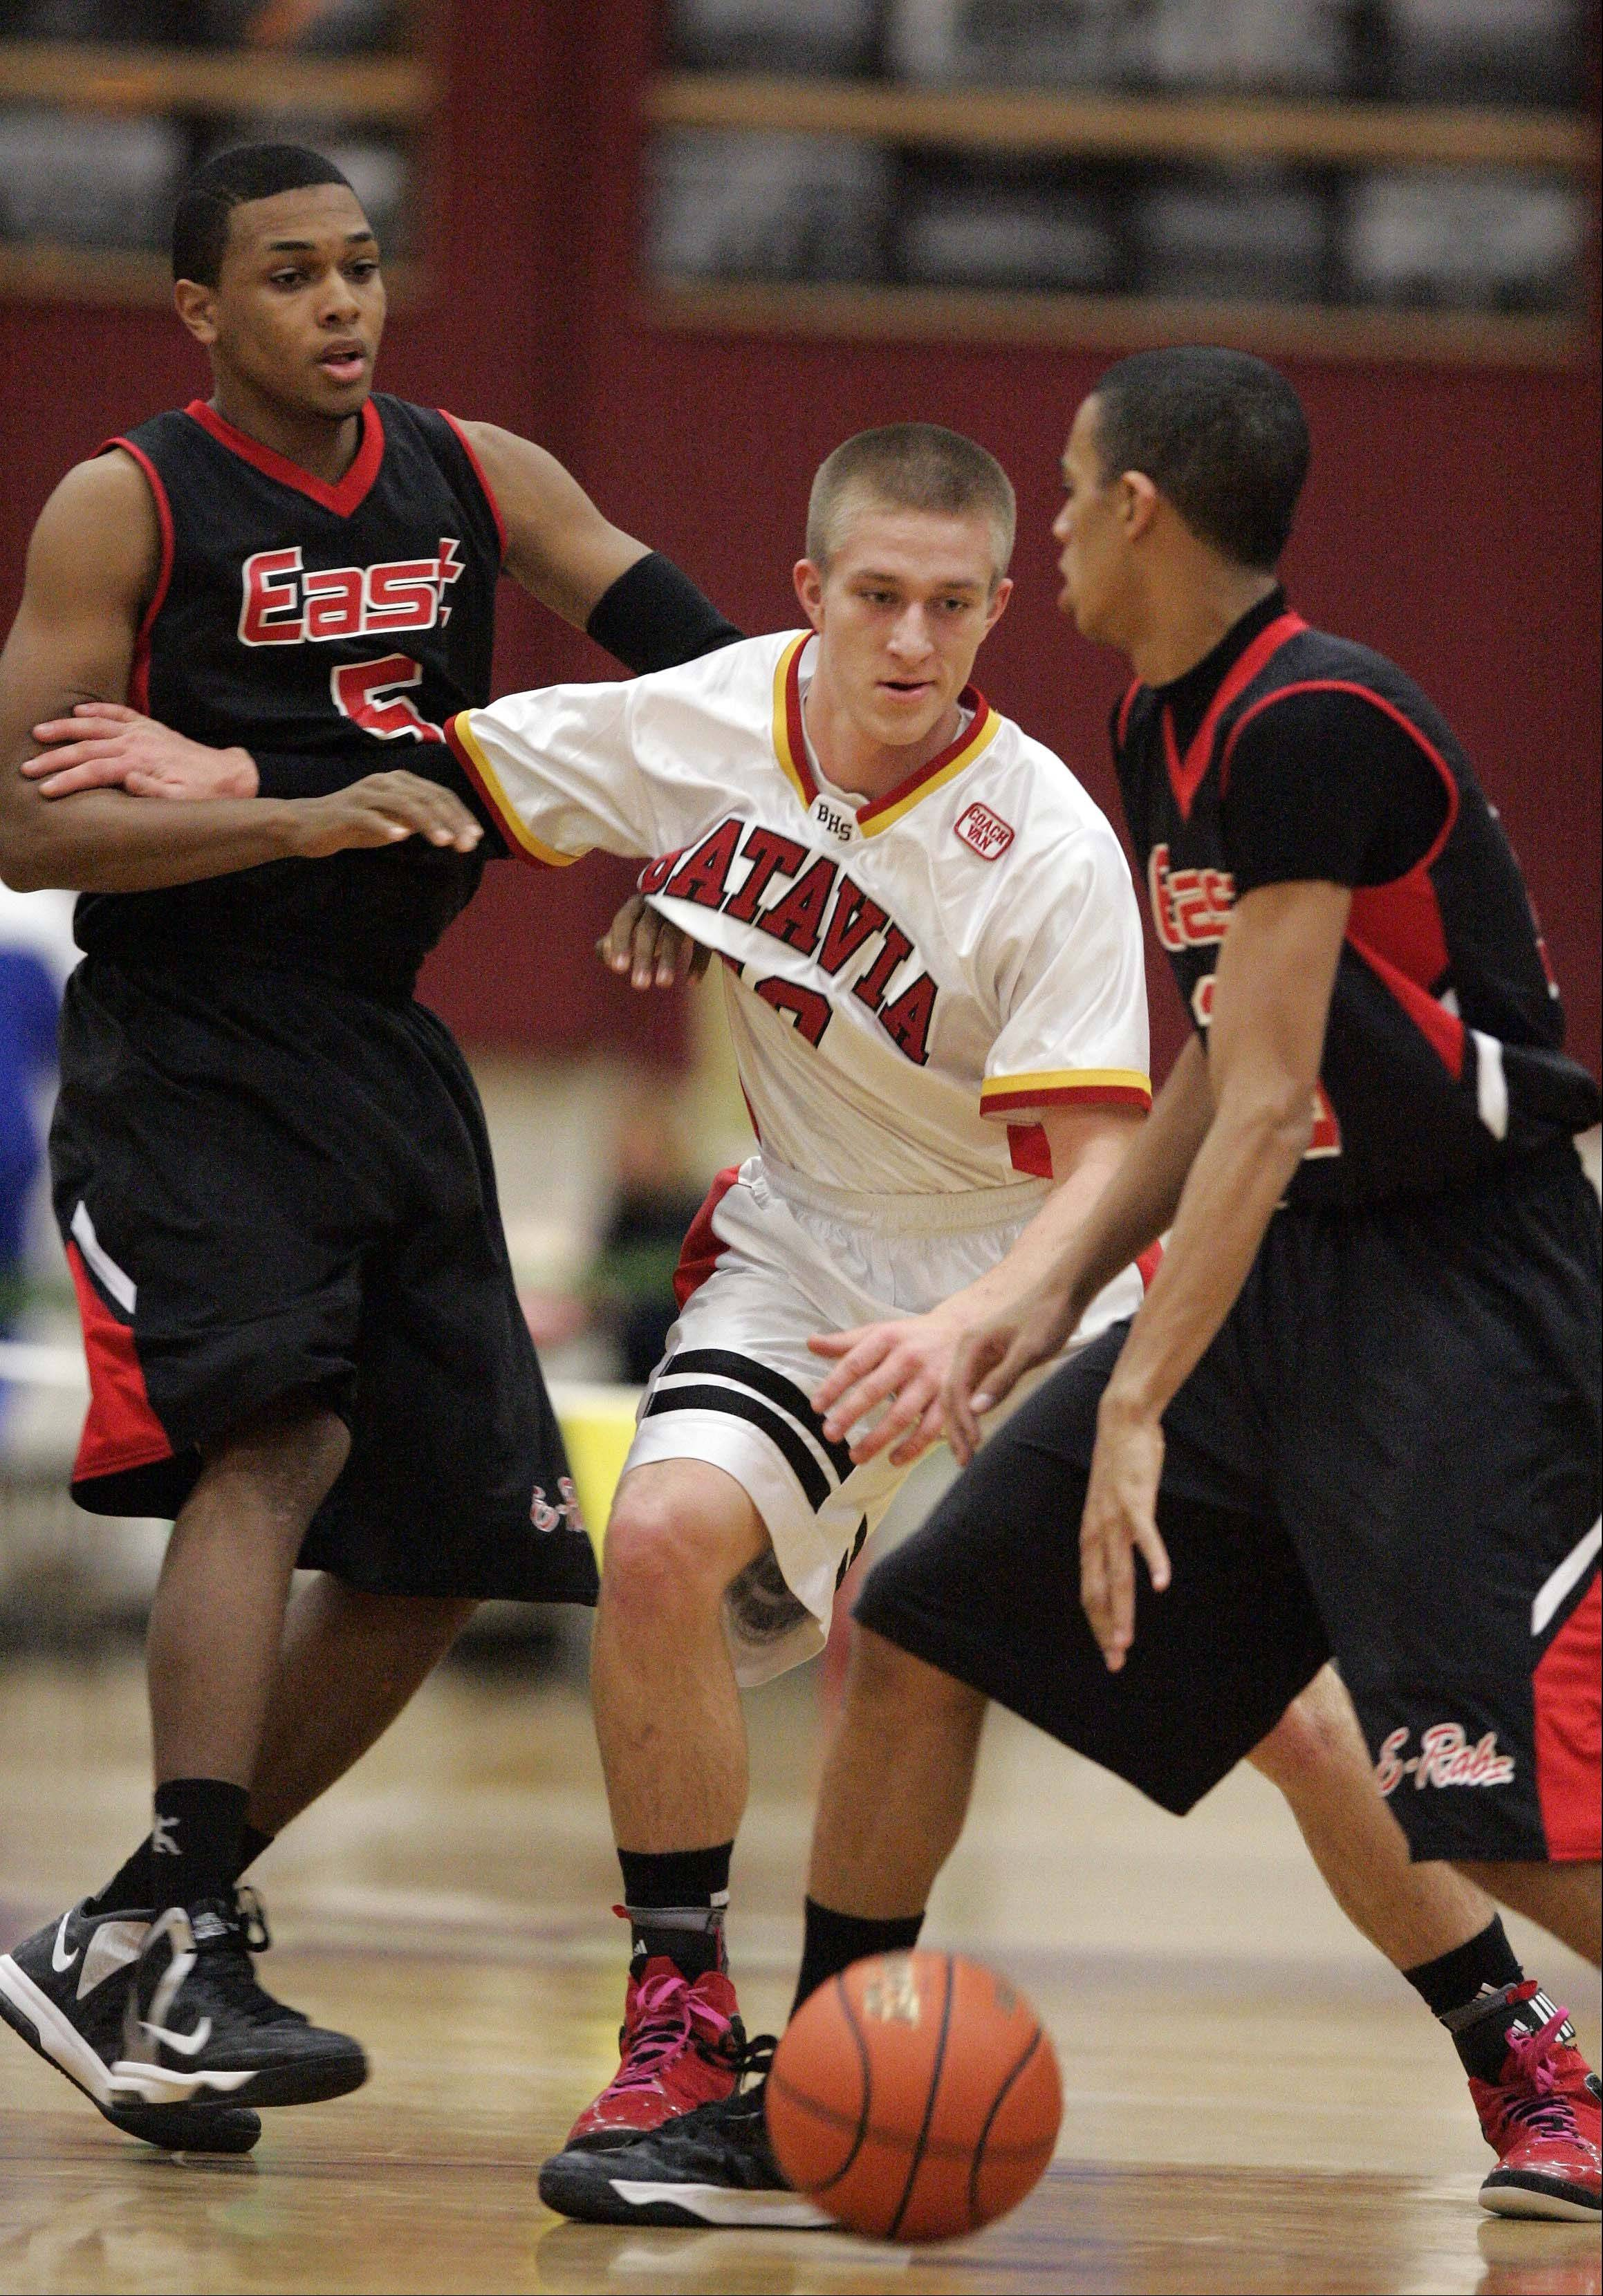 Images: Batavia vs Rockford East boys basketball